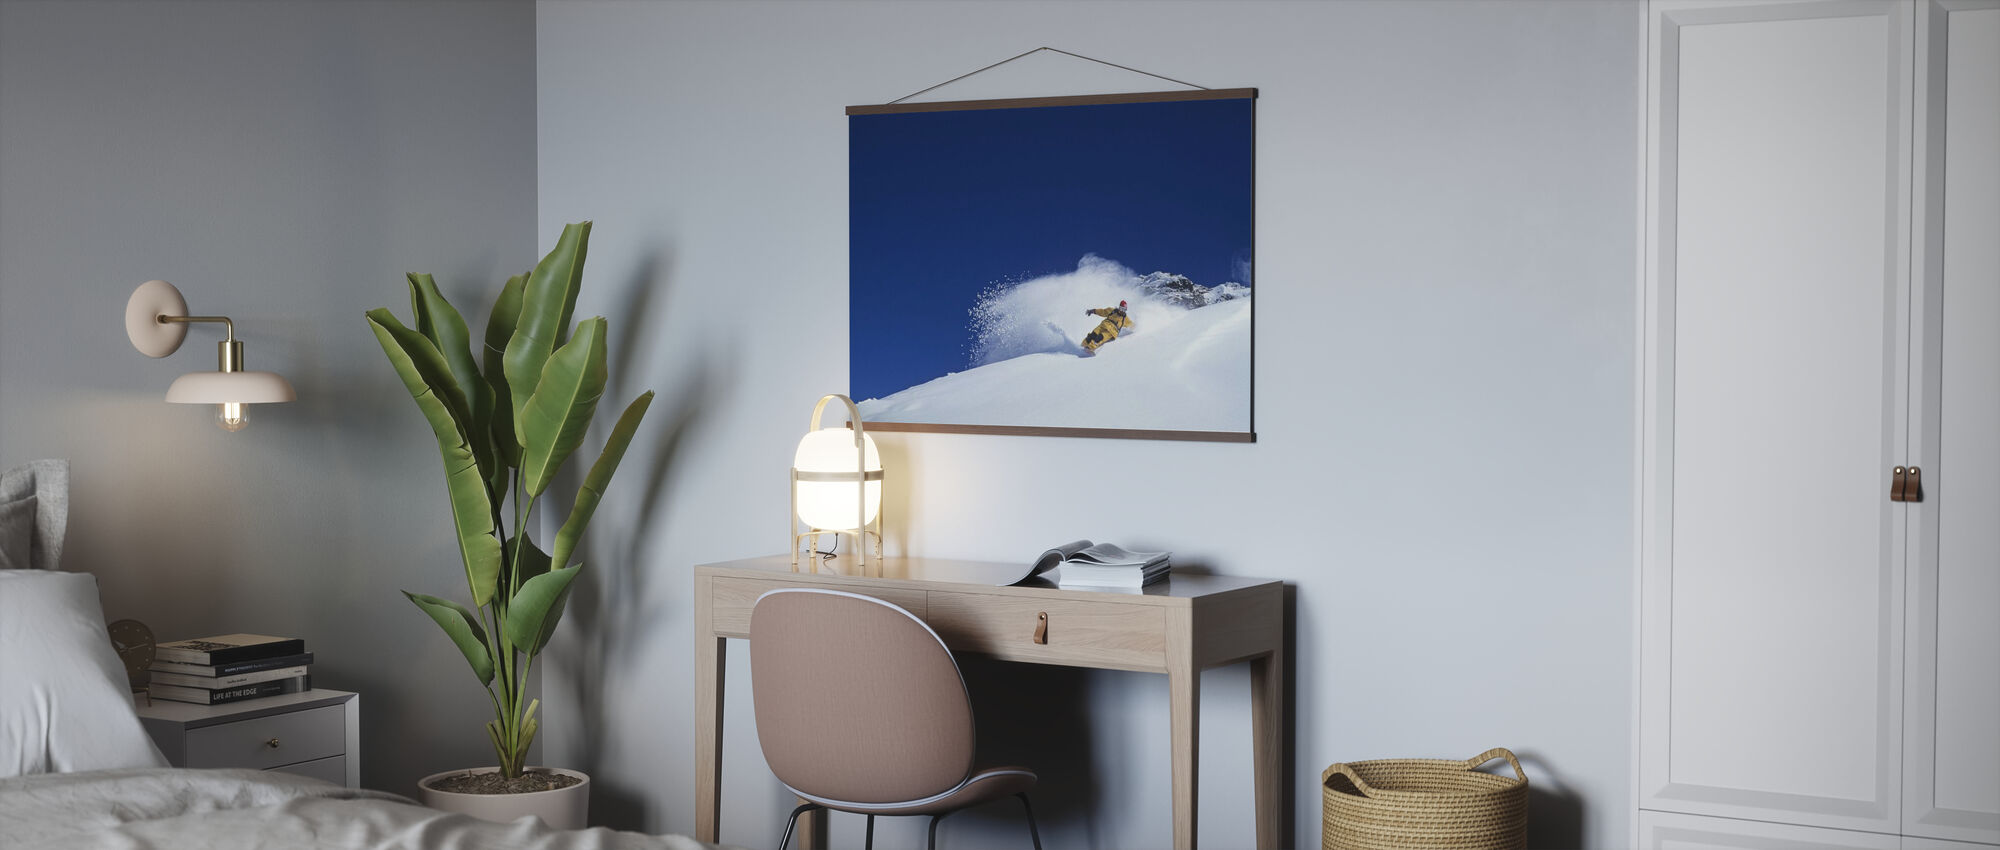 Powder Dreaming - Poster - Office